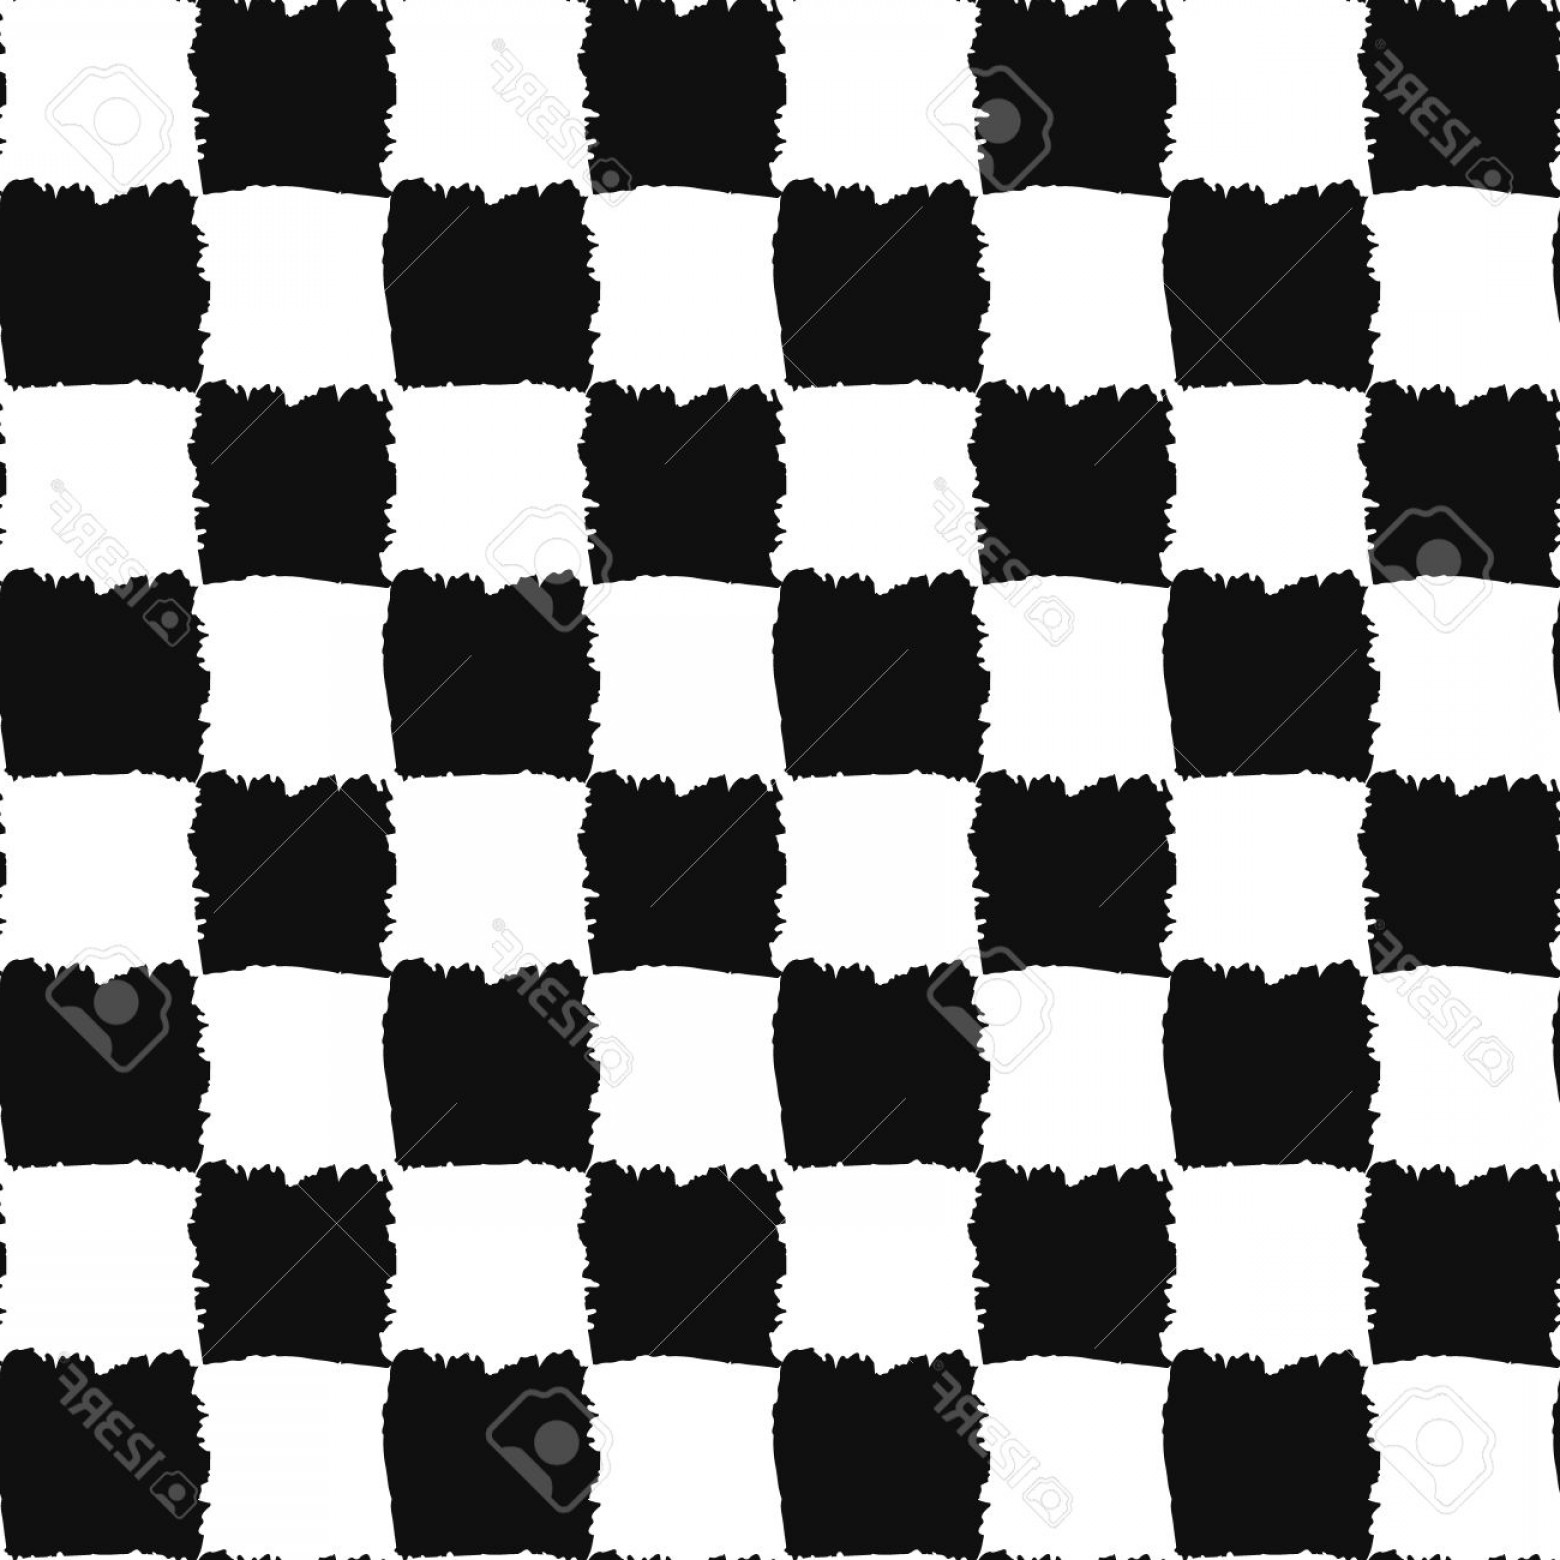 Checker Vector Template: Photostock Vector Check Black And White Seamless Pattern Checkers Board Vector Painted Design Brush Strokes Texture Gr